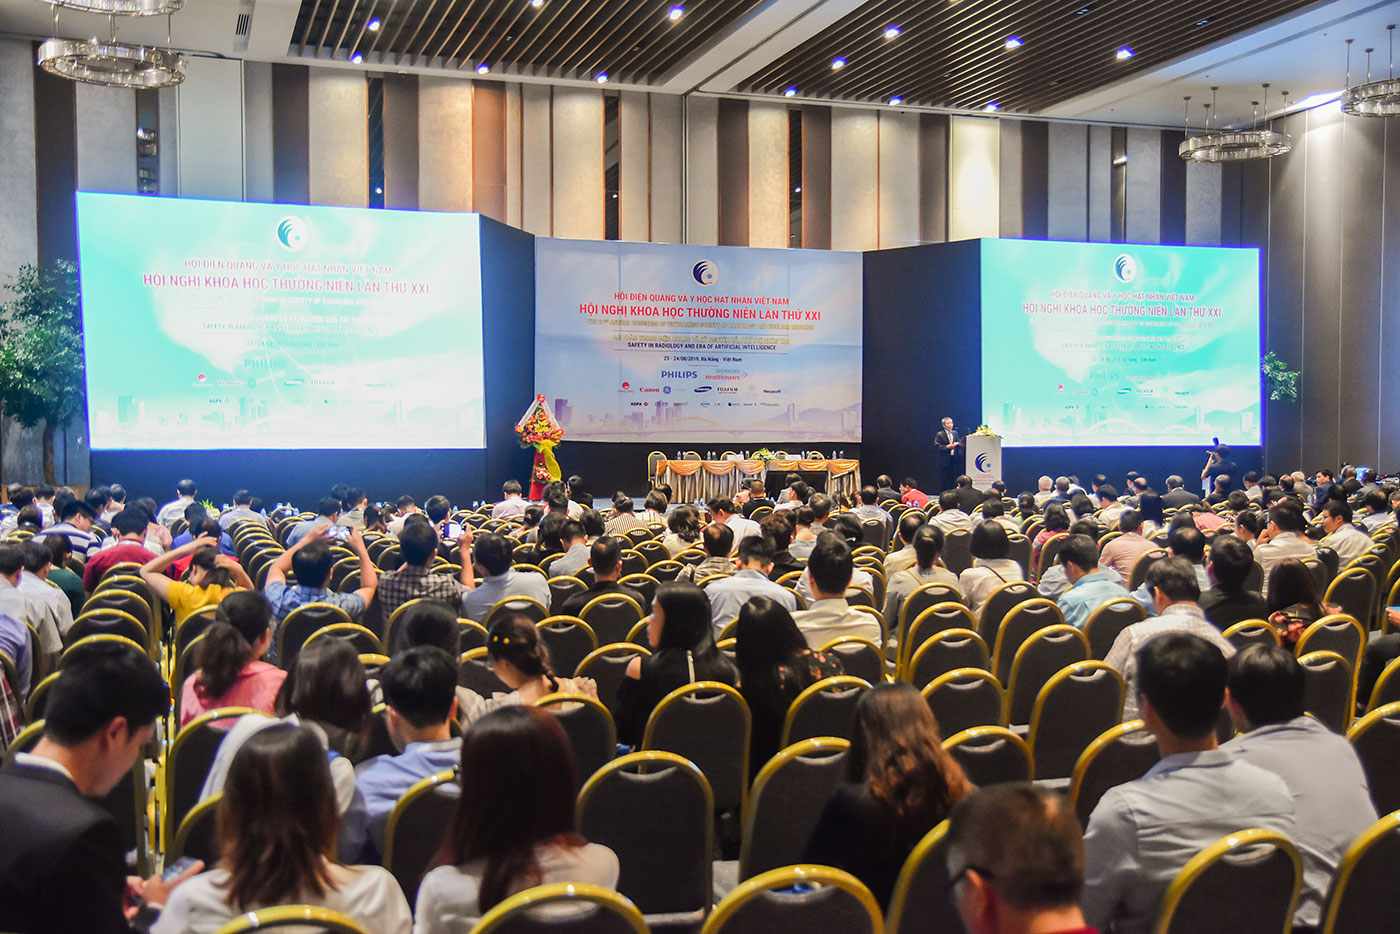 21ST CONGRESS OF VN SOCIETY OF RADIOLOGY & NUCLEAR MEDICINE